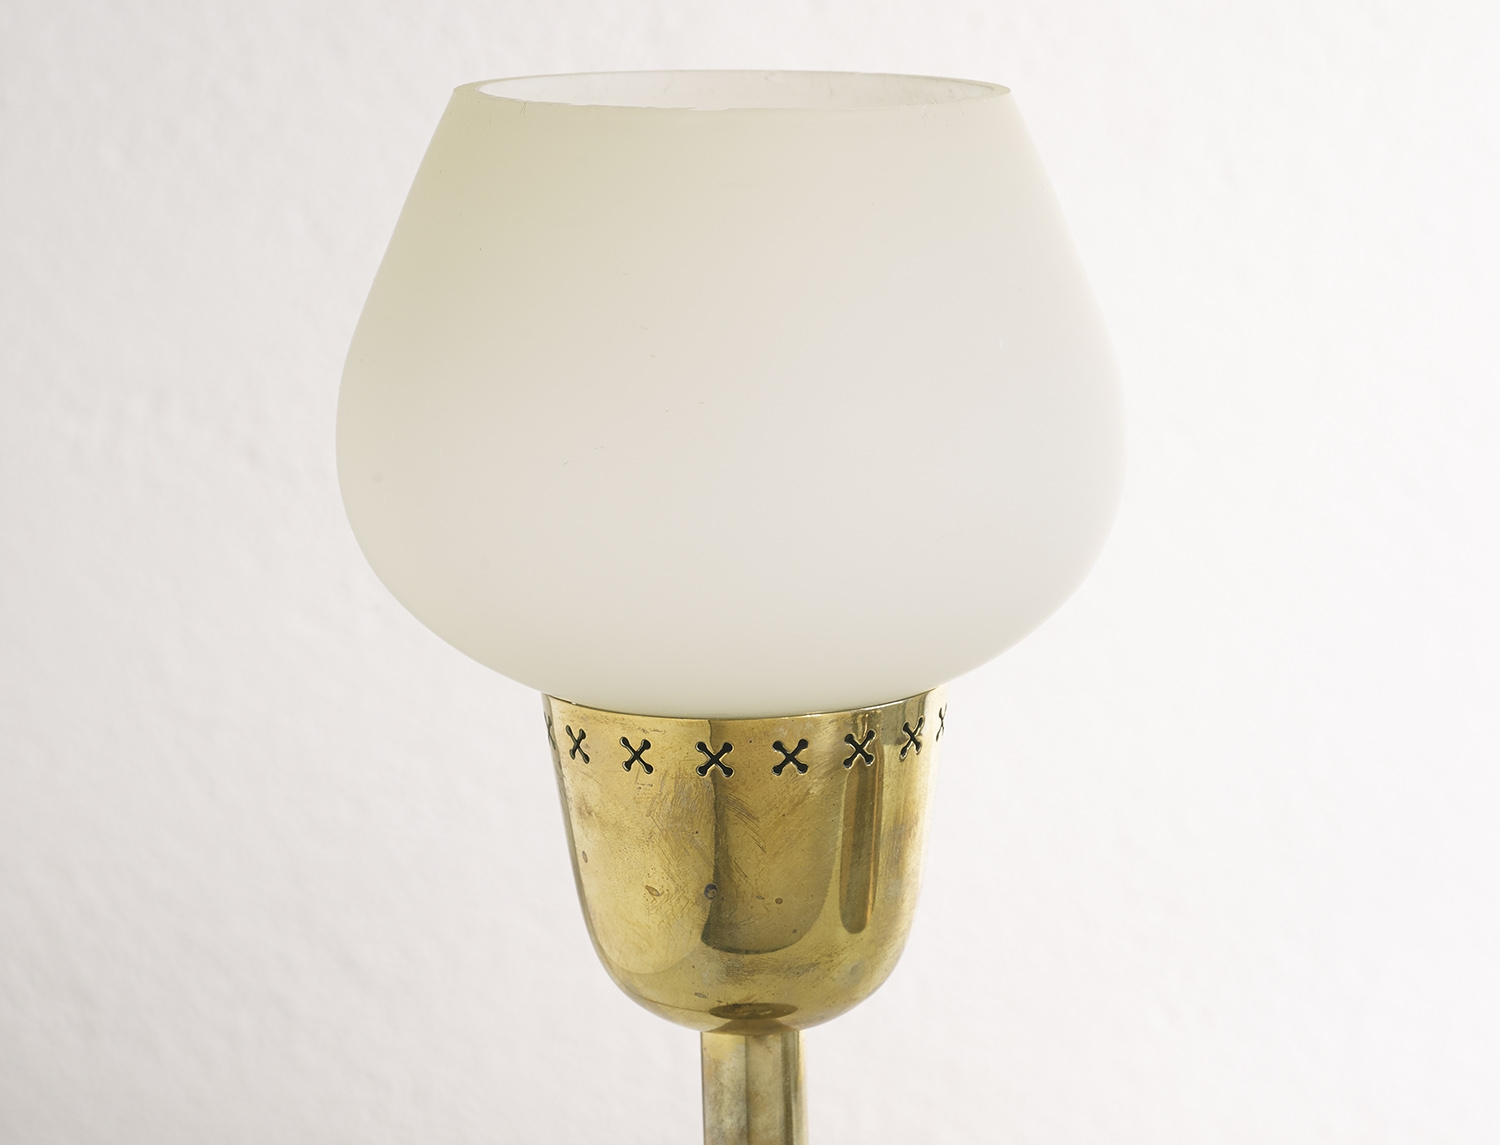 scandinavian-brass-table-lamp-1950-image-04